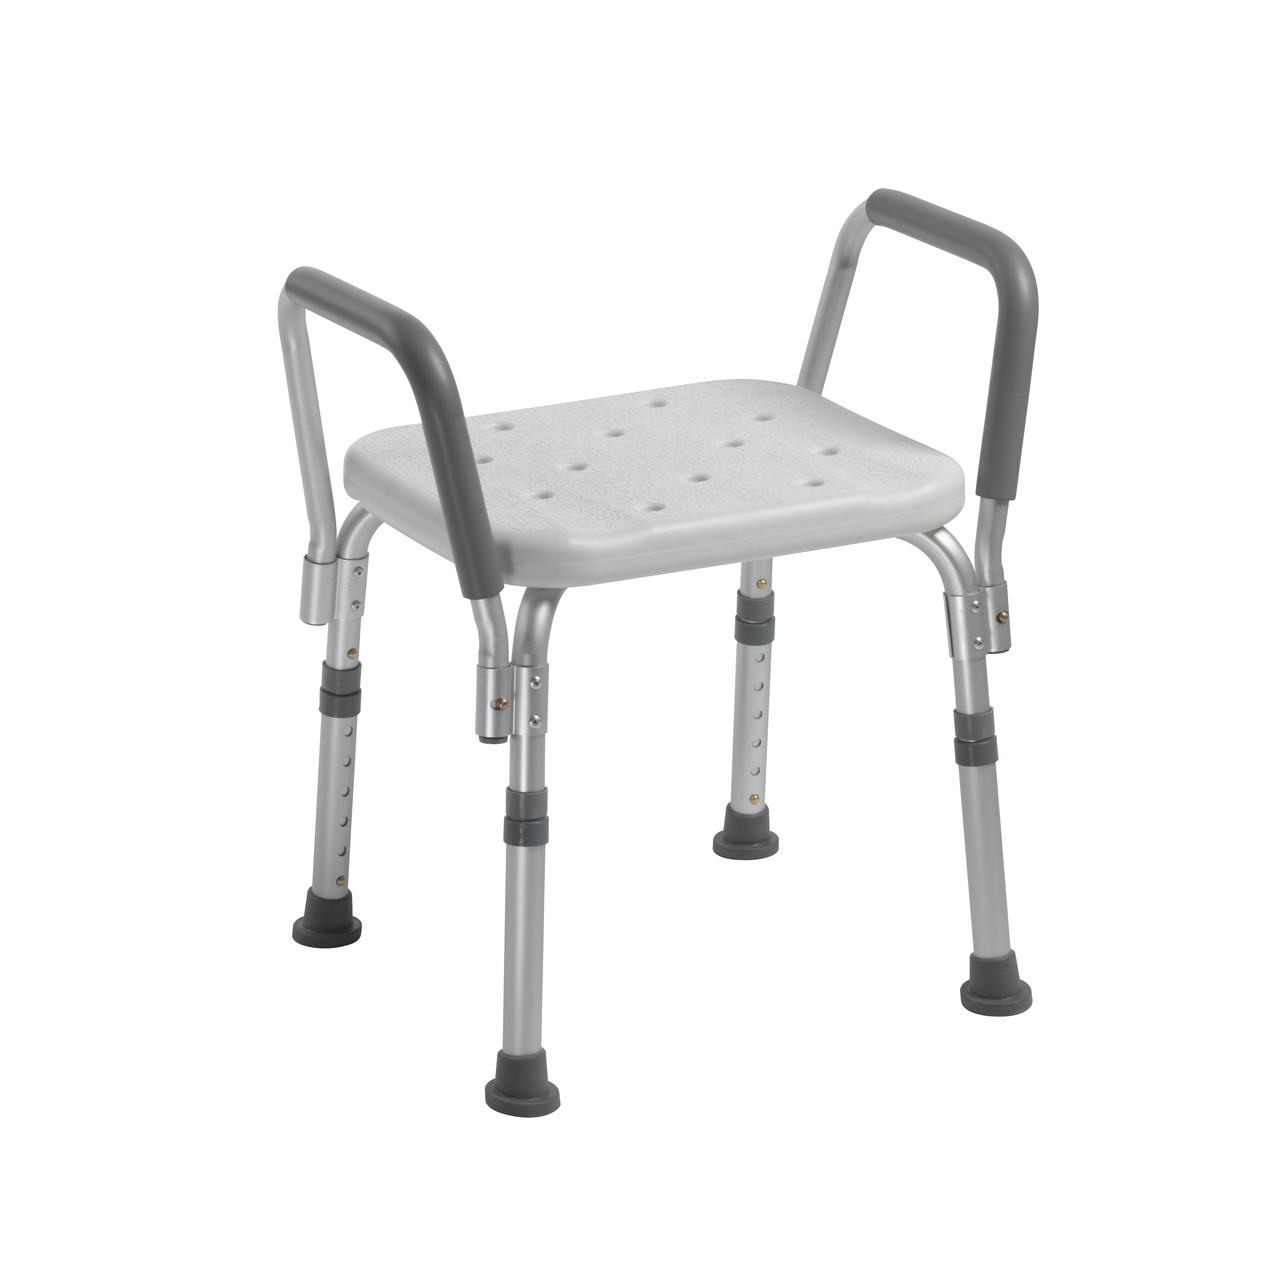 White Drive Medical Knock Down Bath Bench with Back and Padded Arms